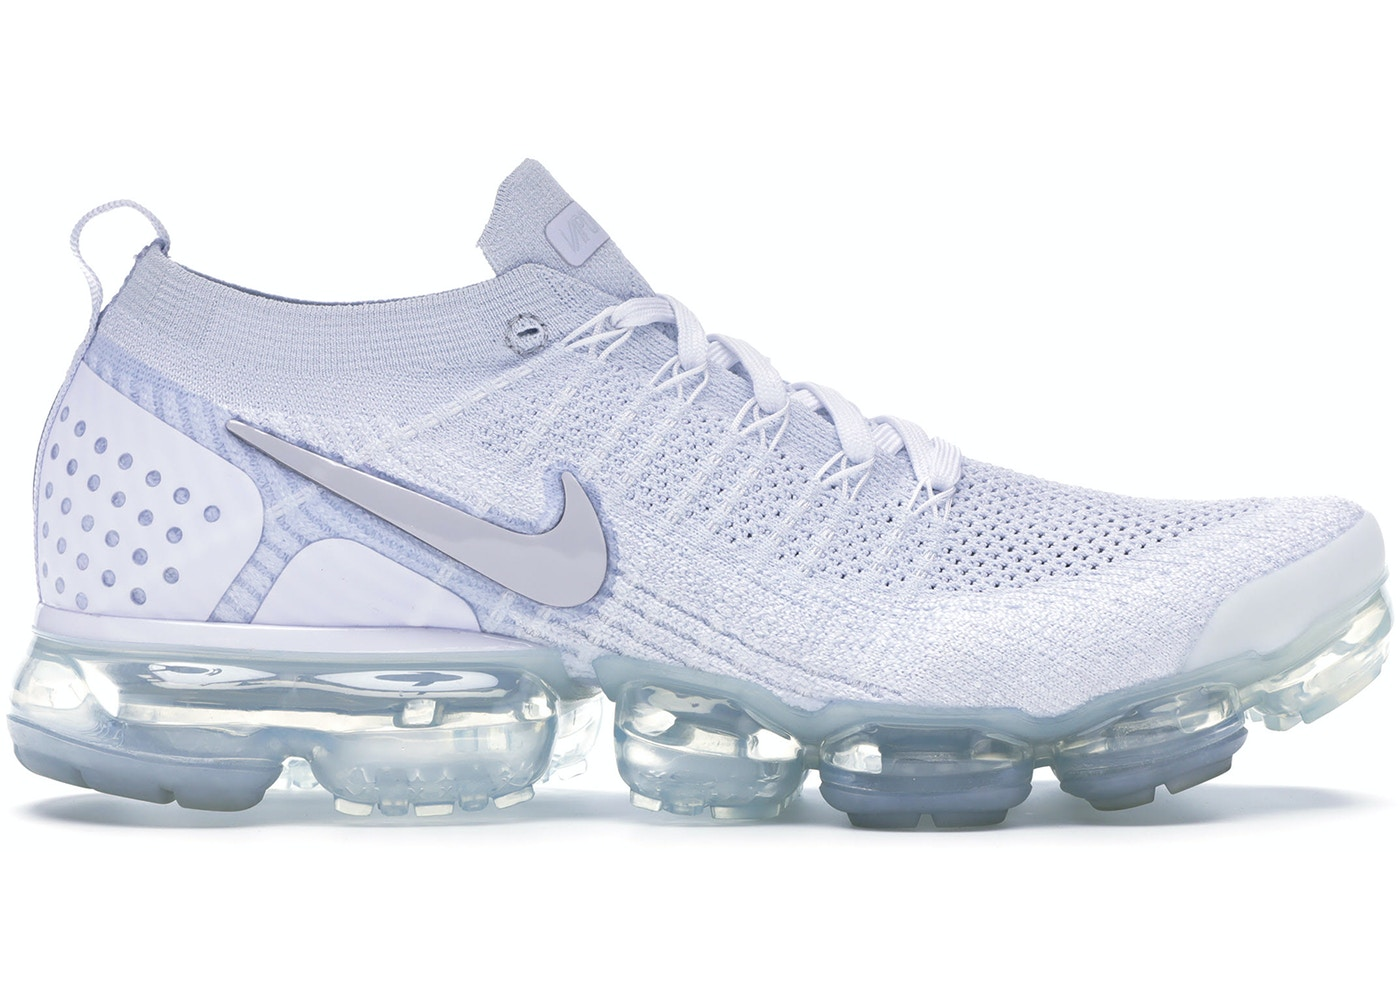 new styles 1547a ac881 Air VaporMax Flyknit 2 White Vast Grey - 942842-105